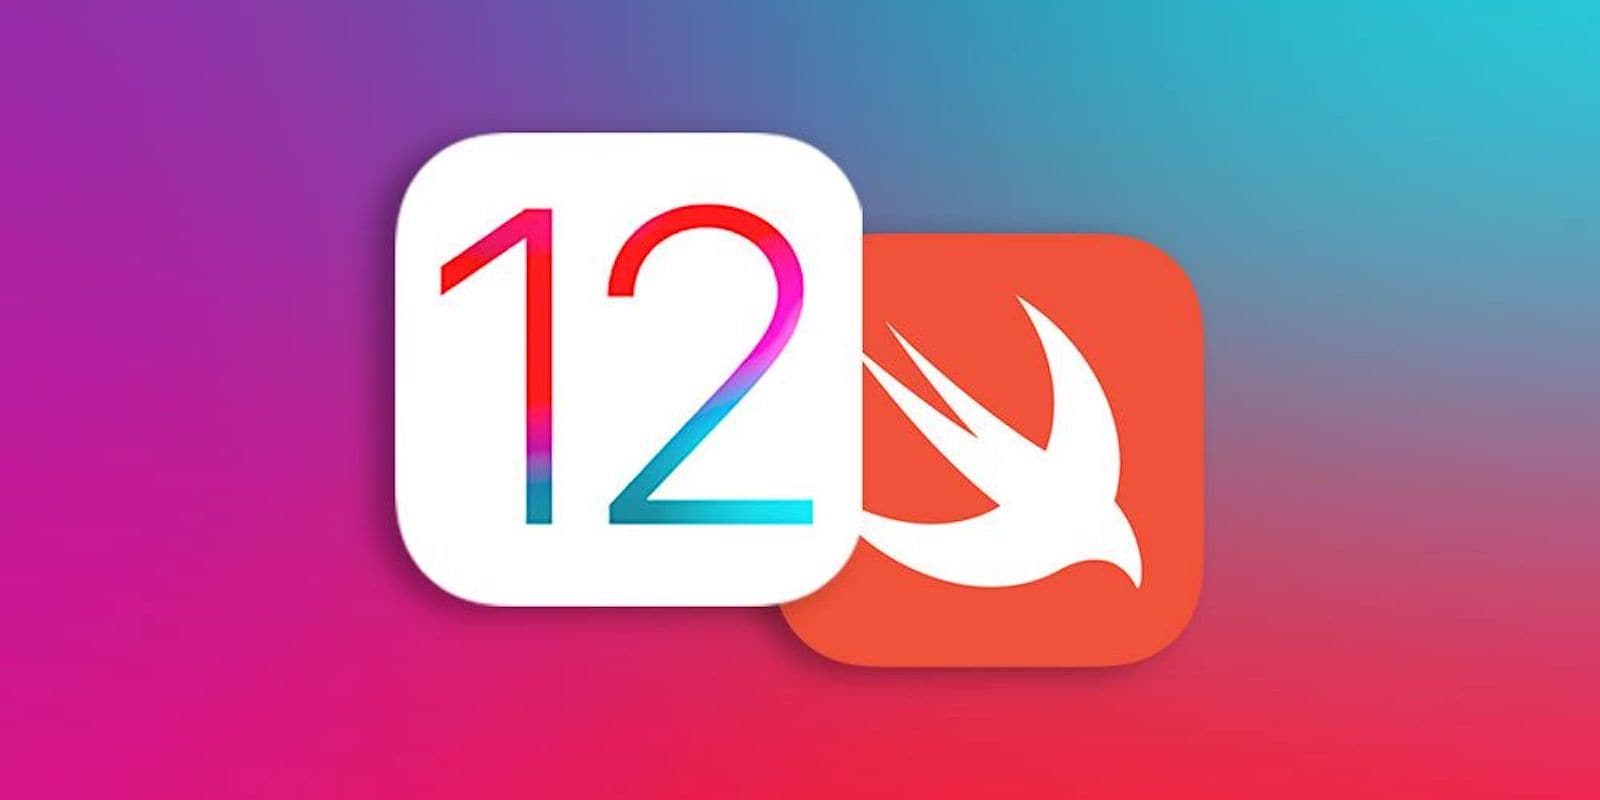 Expand your professional and creative toolkit by mastering the many facets of iOS 12 development.